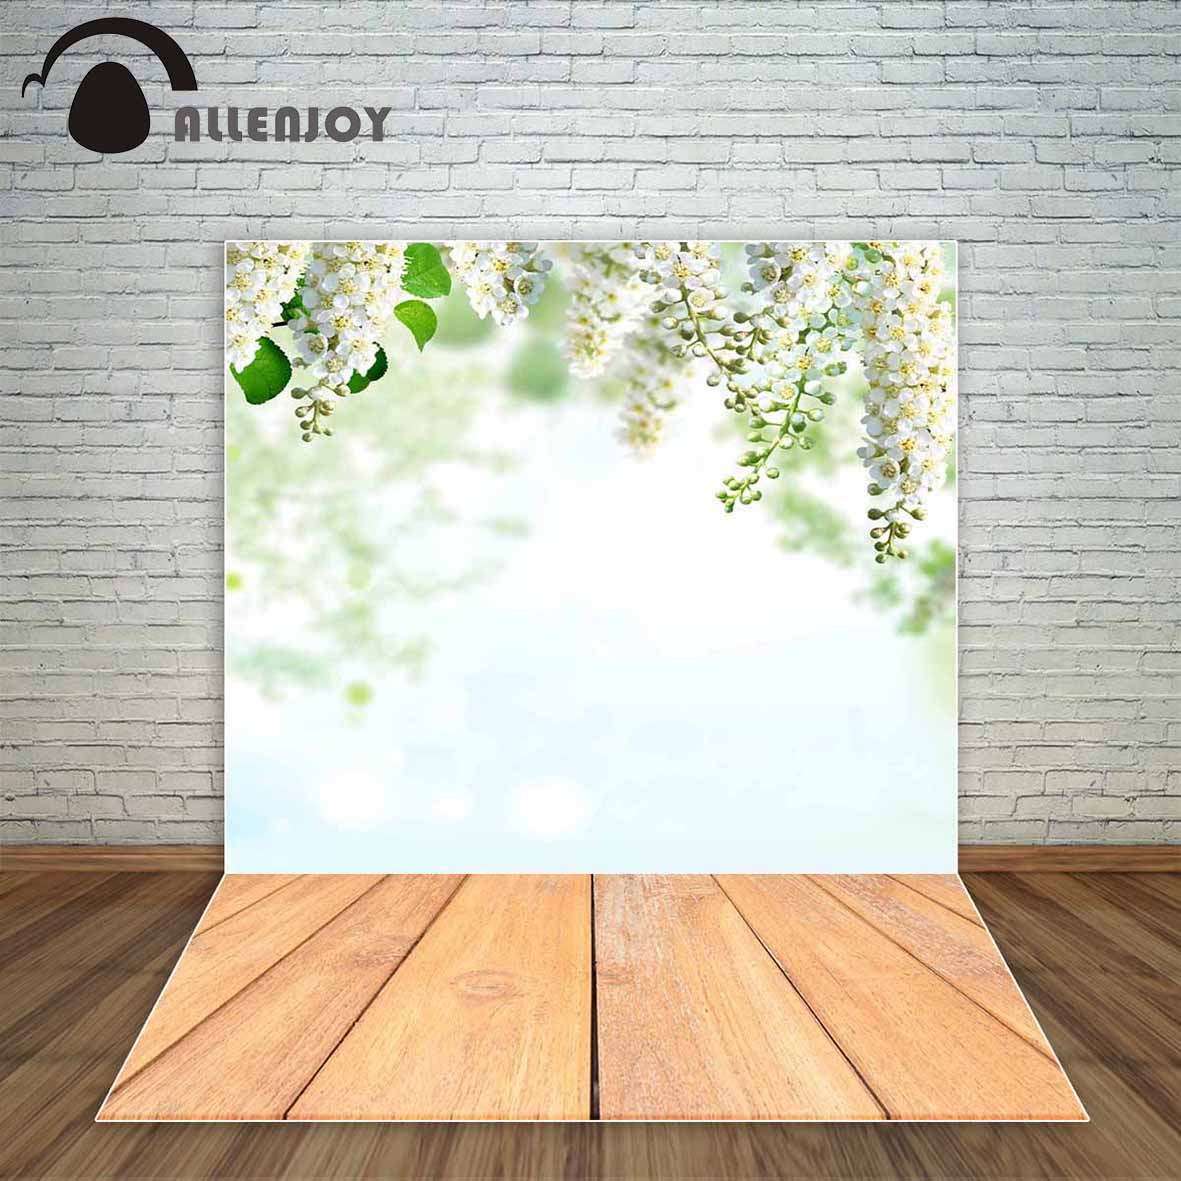 Bokeh Flowers Wedding: Allenjoy Spring Backdrop White Flowers With Wood